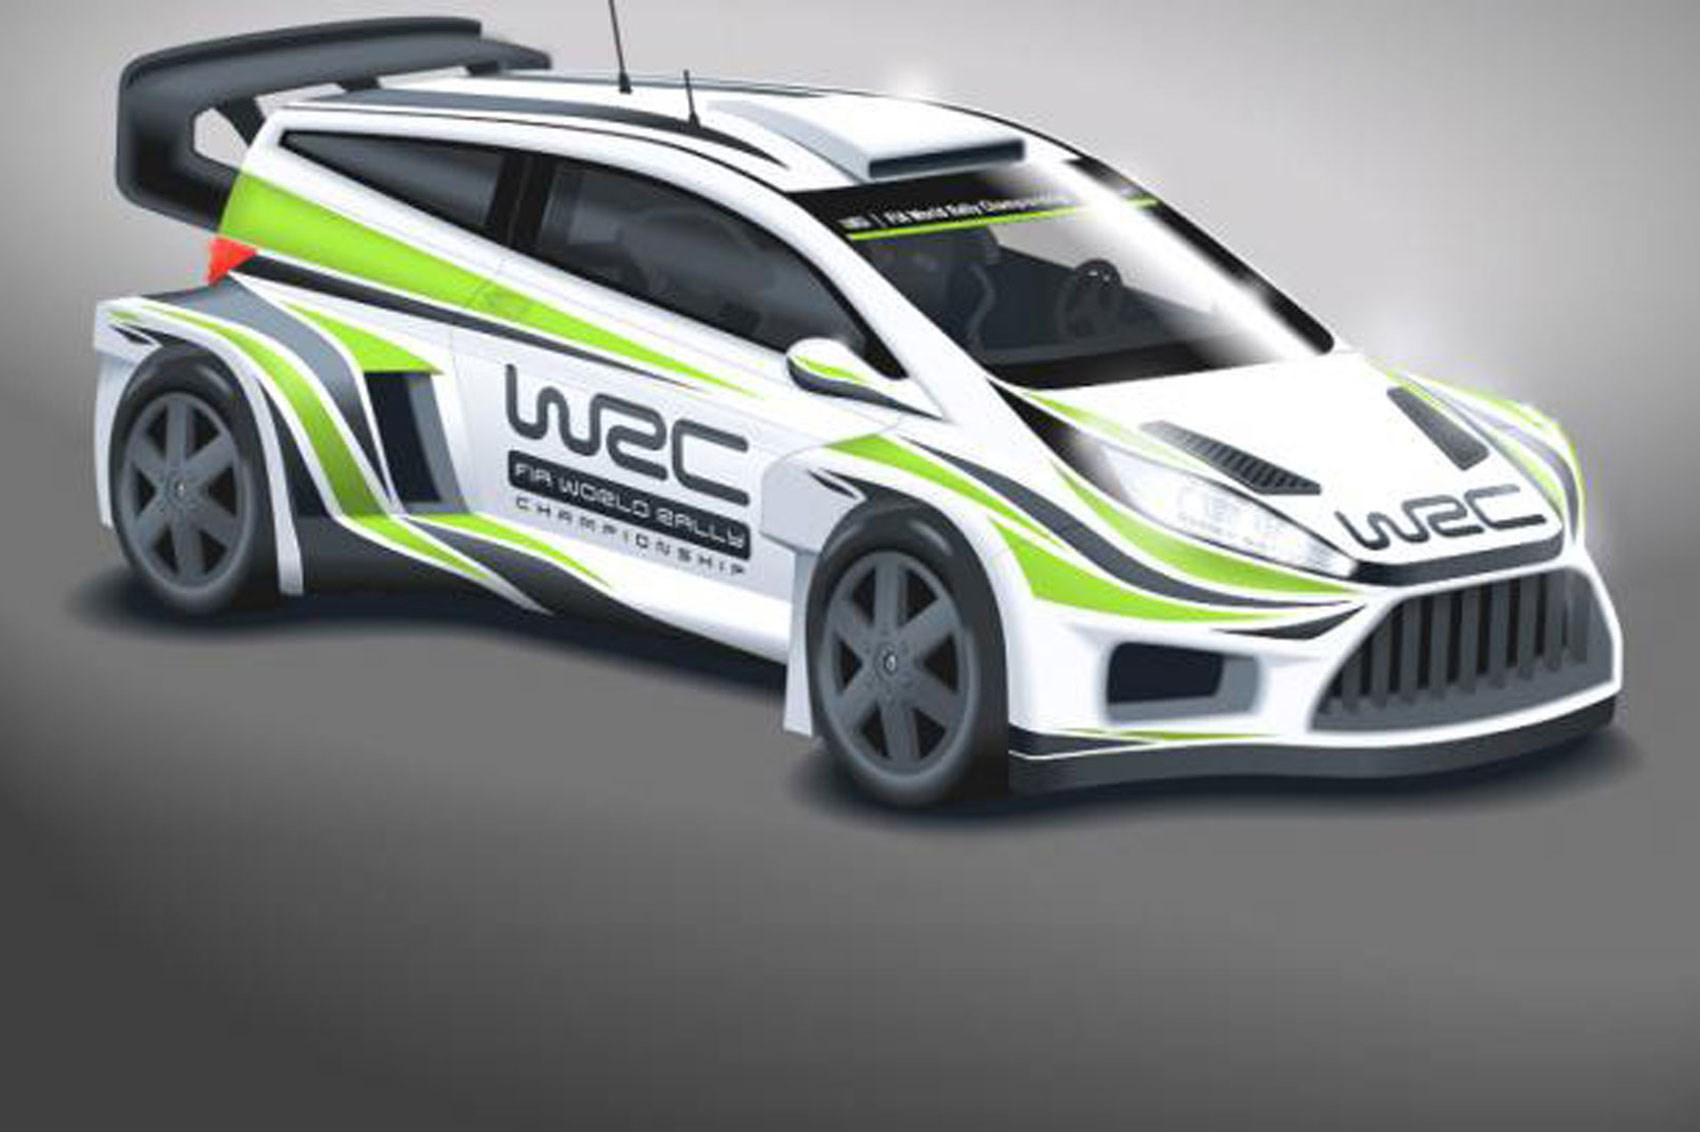 Ultrablogus  Winning Wild New Look For Wrc Cars In  By Car Magazine With Hot Wrc Cars Will Get Wider Bodies Bigger Wings And More Power For  With Agreeable Best Auto Interior Protectant Also Interior Terminology In Addition E M Interior And Jeep Jk Interior Trim As Well As Parts Of The Interior Of A Car Additionally Car Interior Parts Names From Carmagazinecouk With Ultrablogus  Hot Wild New Look For Wrc Cars In  By Car Magazine With Agreeable Wrc Cars Will Get Wider Bodies Bigger Wings And More Power For  And Winning Best Auto Interior Protectant Also Interior Terminology In Addition E M Interior From Carmagazinecouk